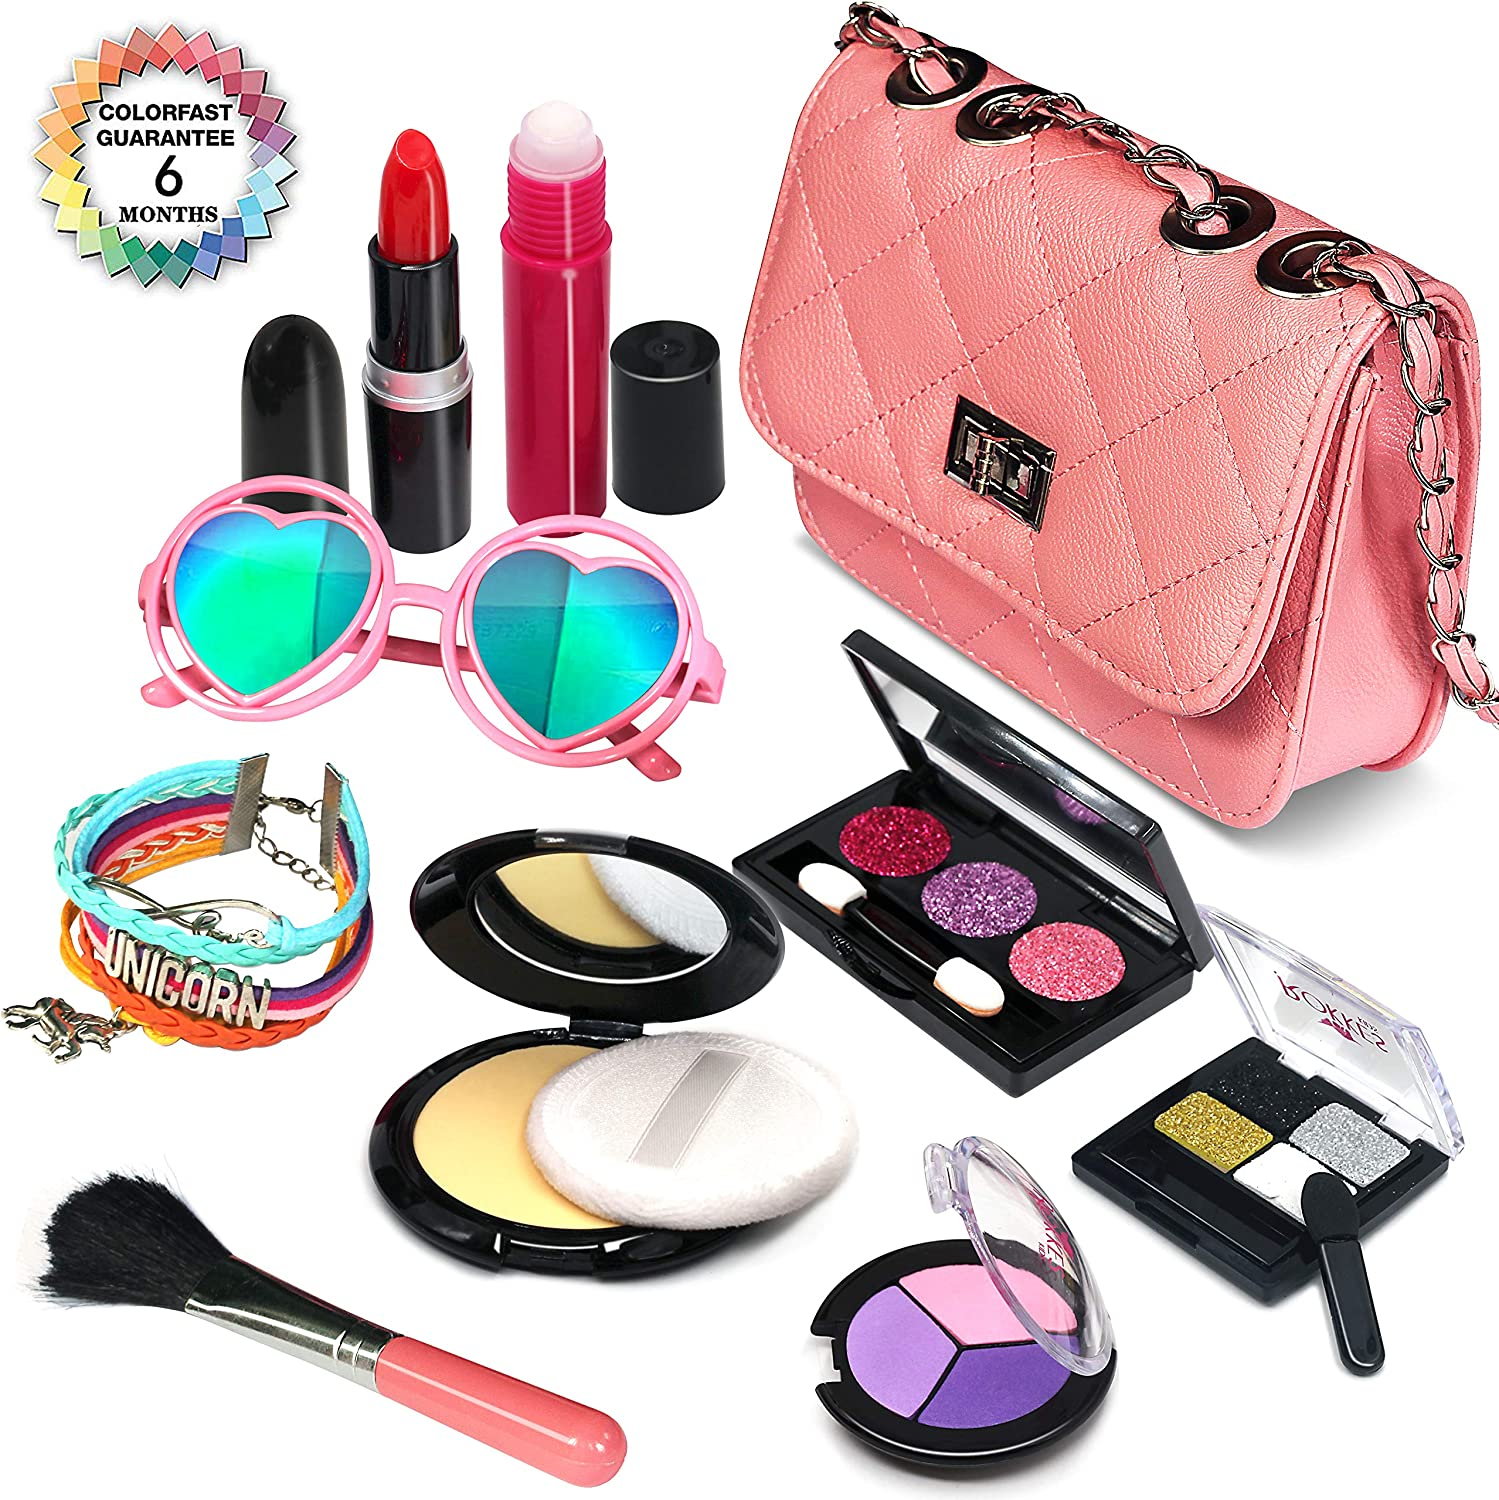 Senrokes Pretend Makeup Play Purse Toy Girls Play Fake Makeup Kit, Princess Purse Toy Makeup for Girls / Toddlers, Safe & Non Toxic Stem Toy, 3 4 5 6 7 8 9 10 Year Old Girl Christmas Birthday Gifts.